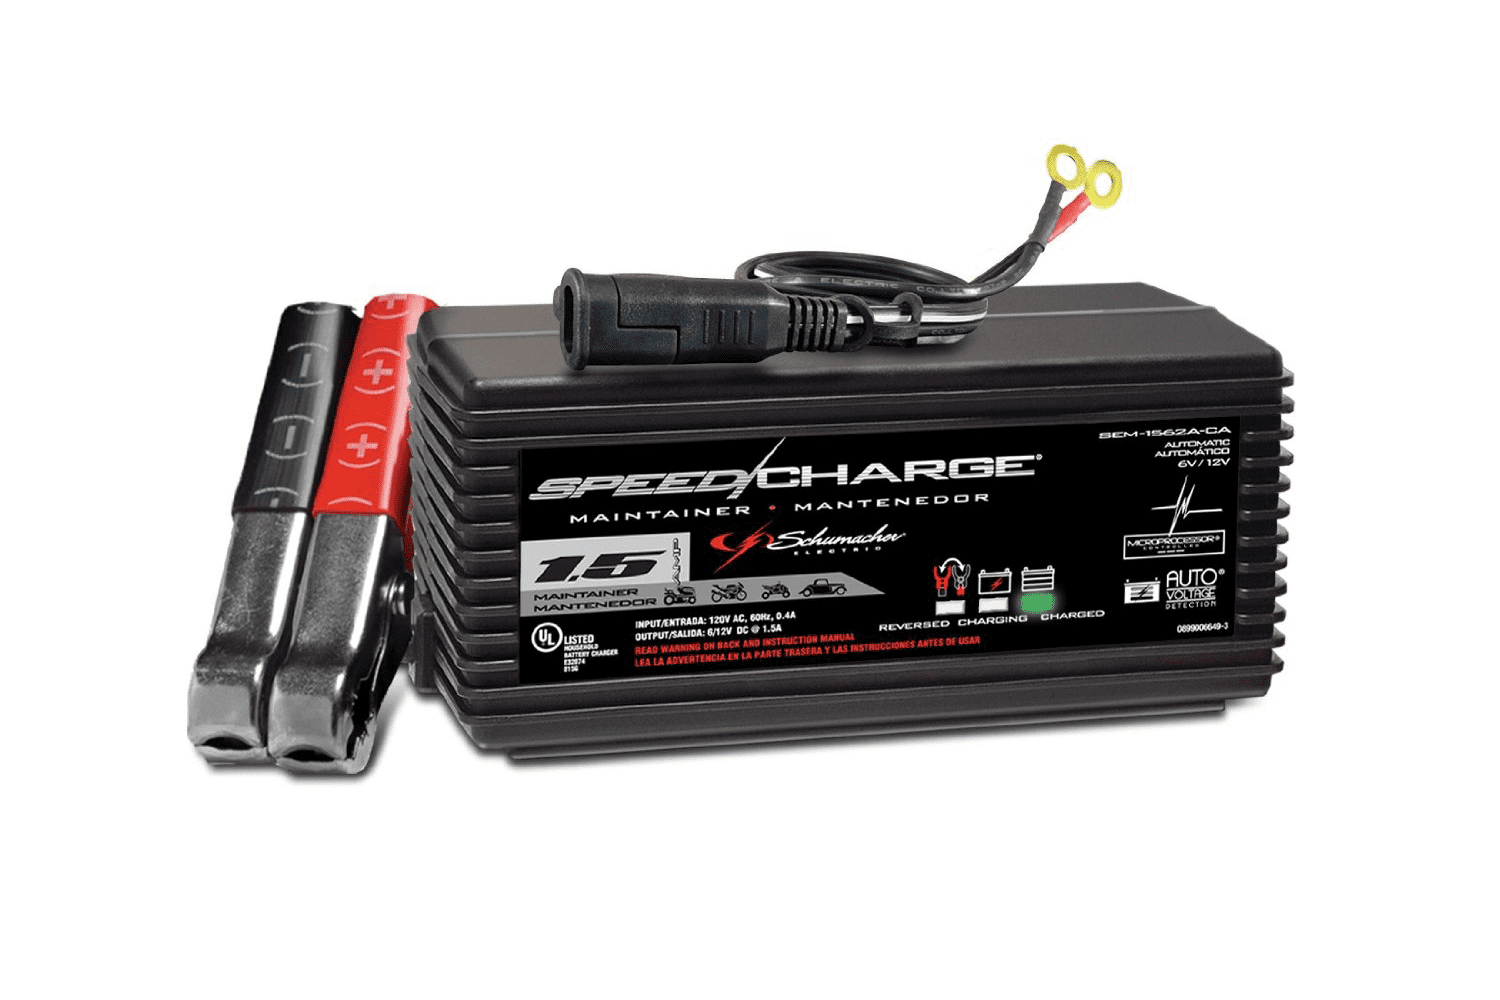 6 12 Volt 1.5 Amp Maintainer by Charge Xpress